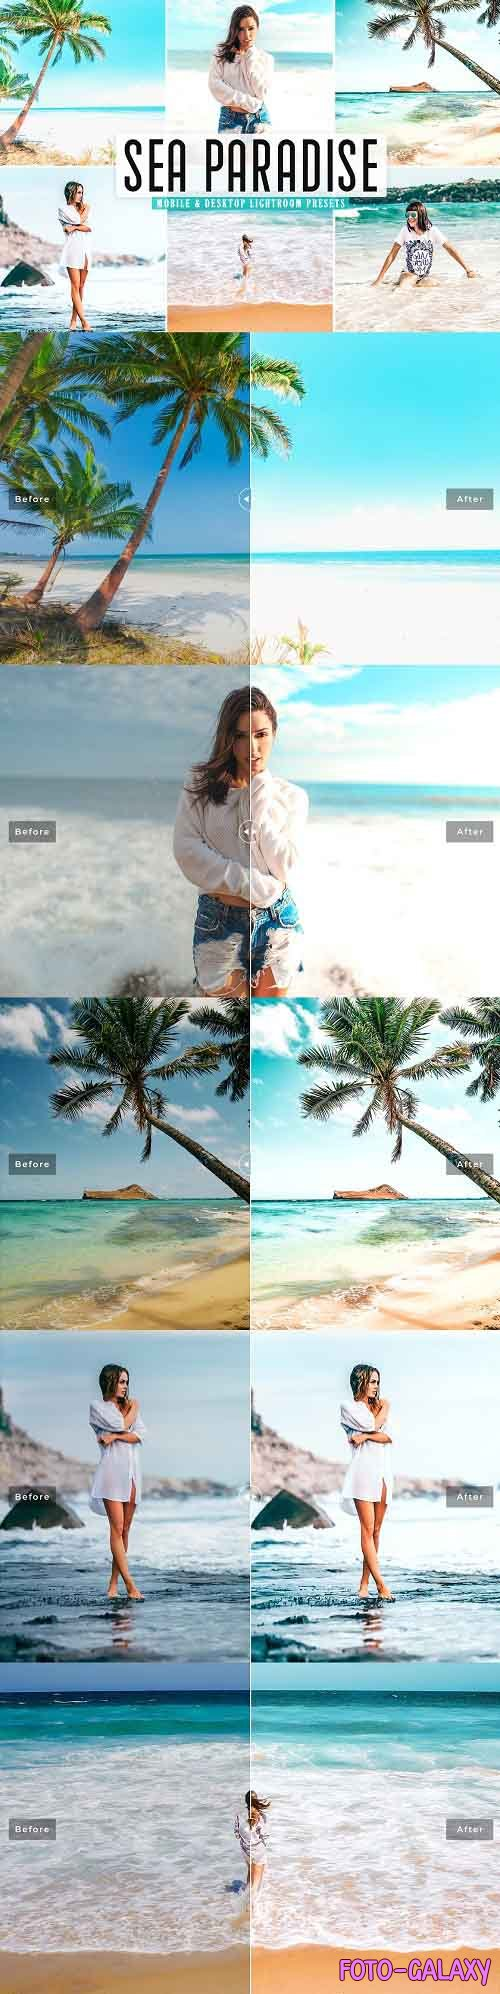 Sea Paradise Pro Lightroom Presets - 5437511 - Mobile & Desktop